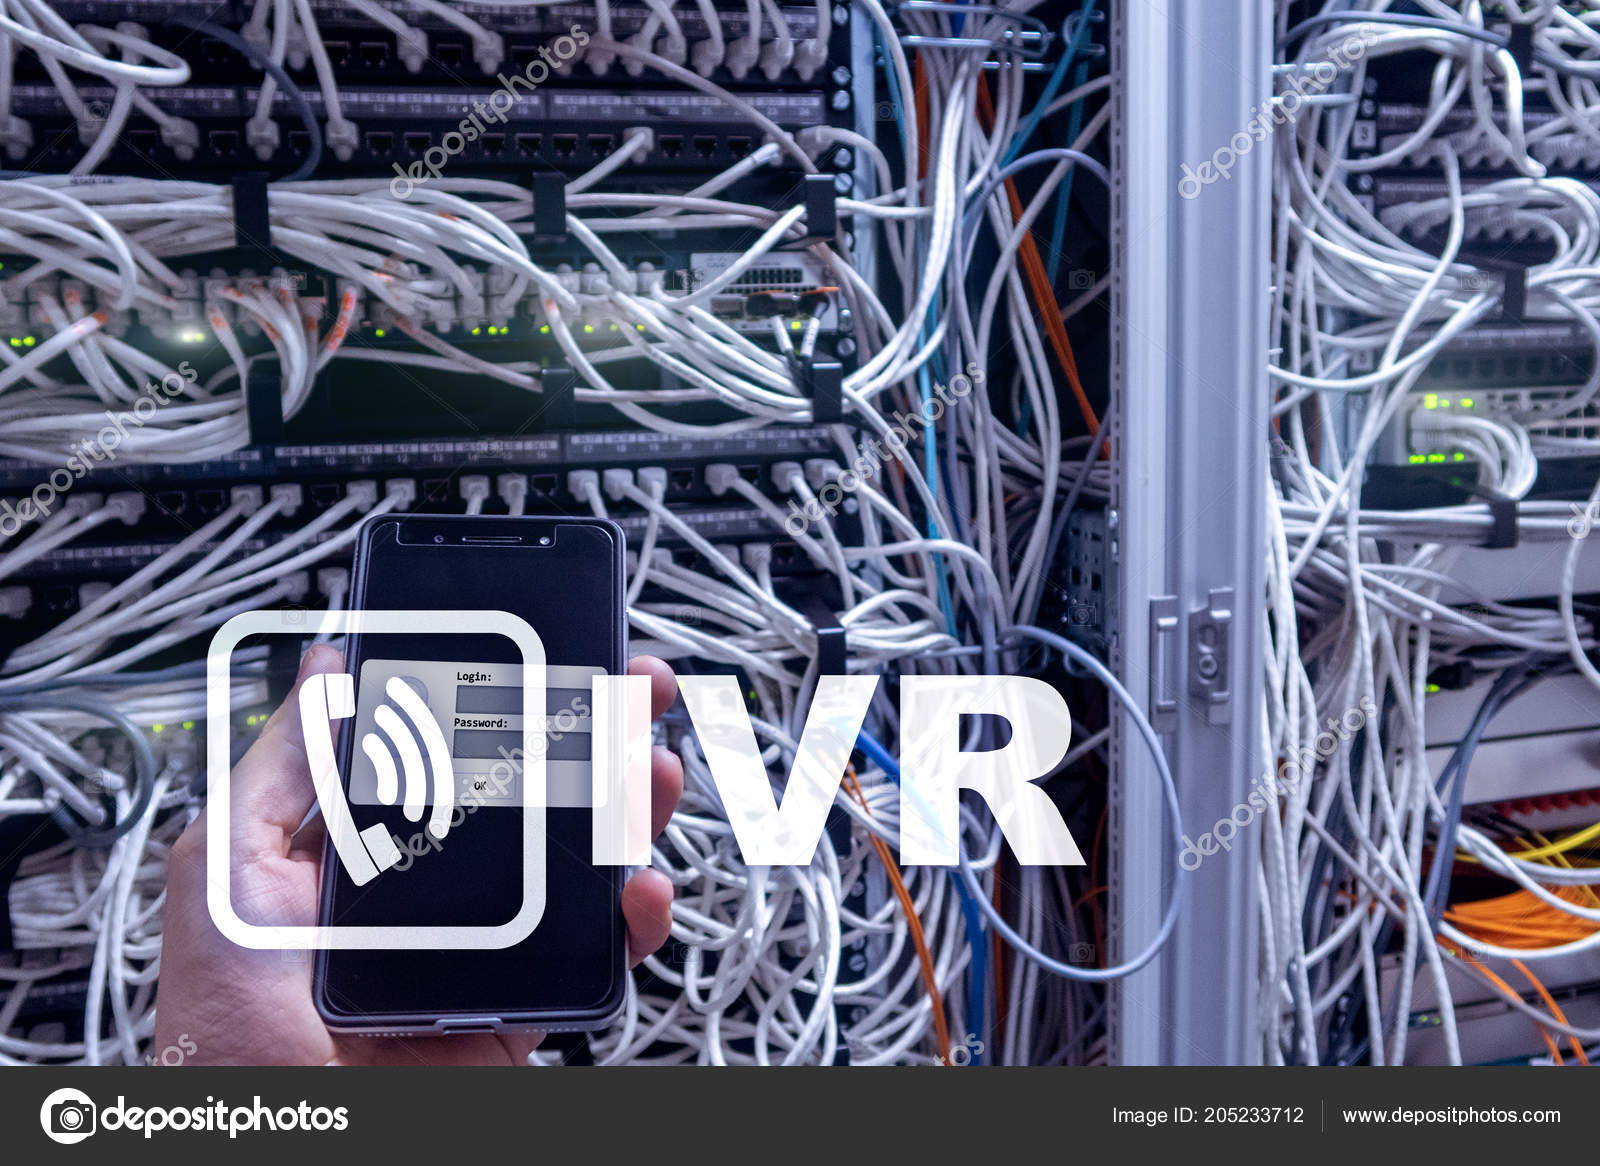 Interactive Cable Wiring Ivr Voice Response Communication Concept Stock Photo